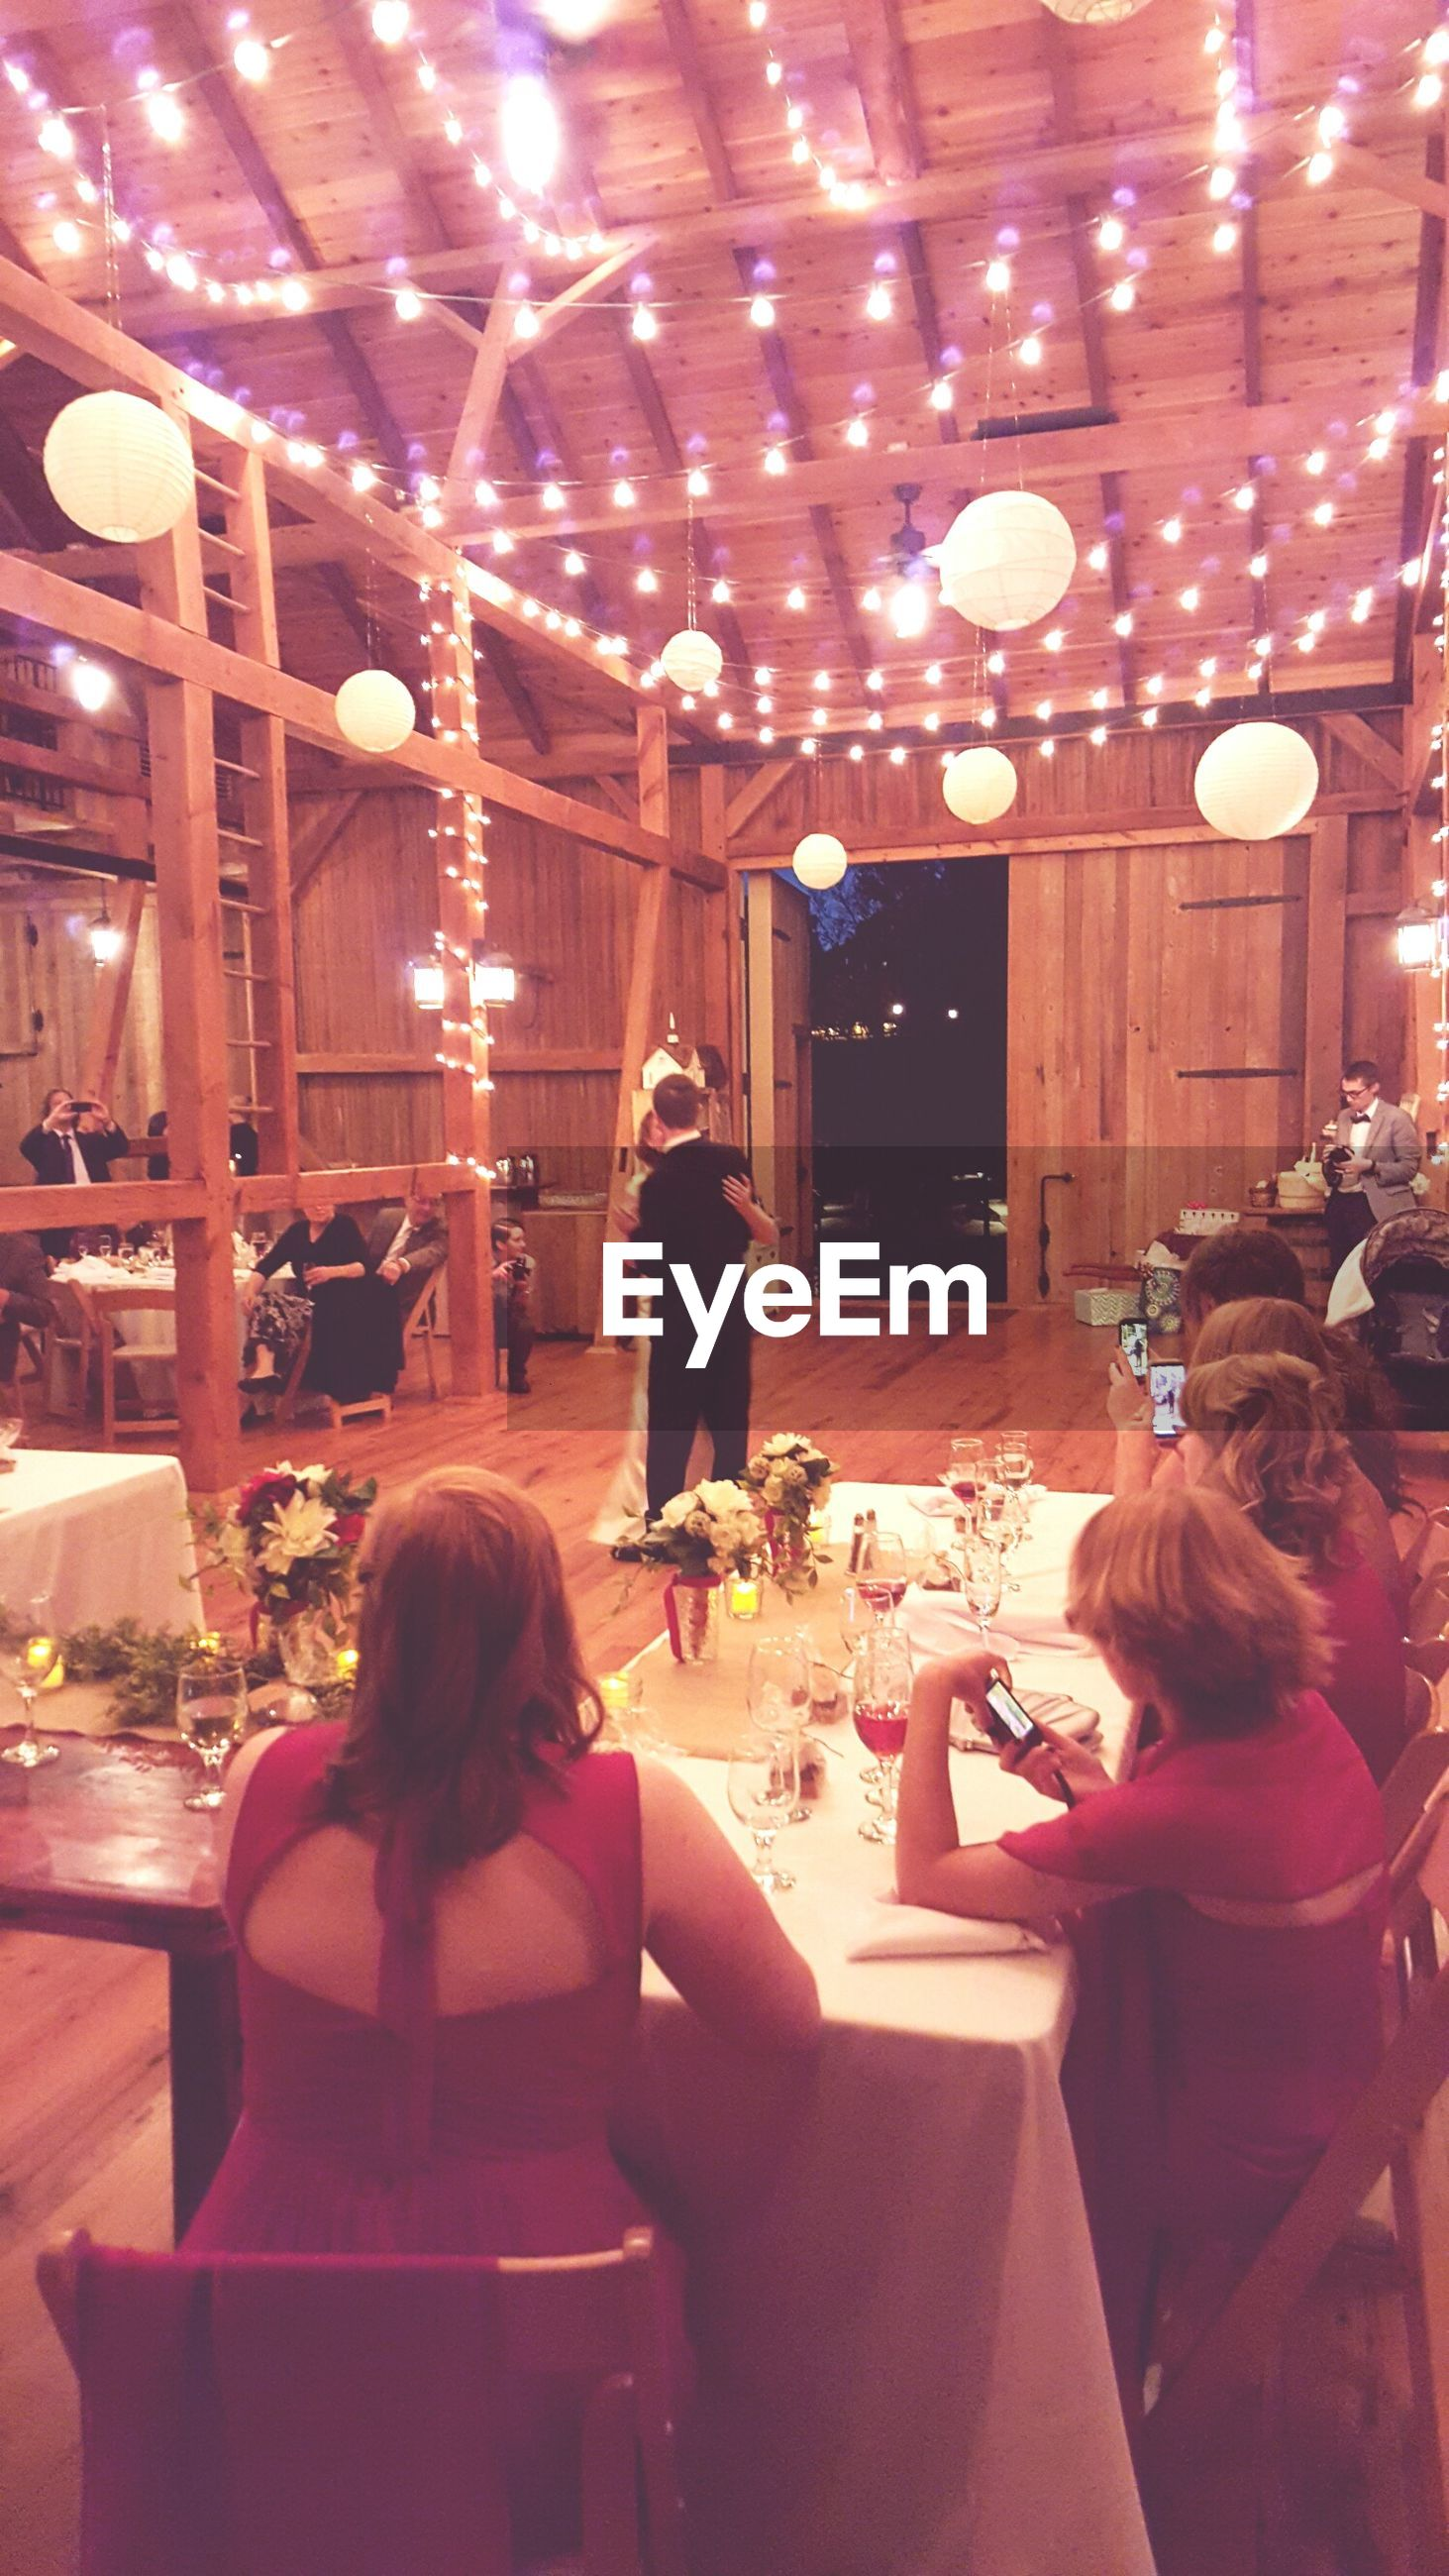 lifestyles, illuminated, indoors, leisure activity, person, men, rear view, night, togetherness, sitting, casual clothing, celebration, lighting equipment, standing, table, restaurant, enjoyment, full length